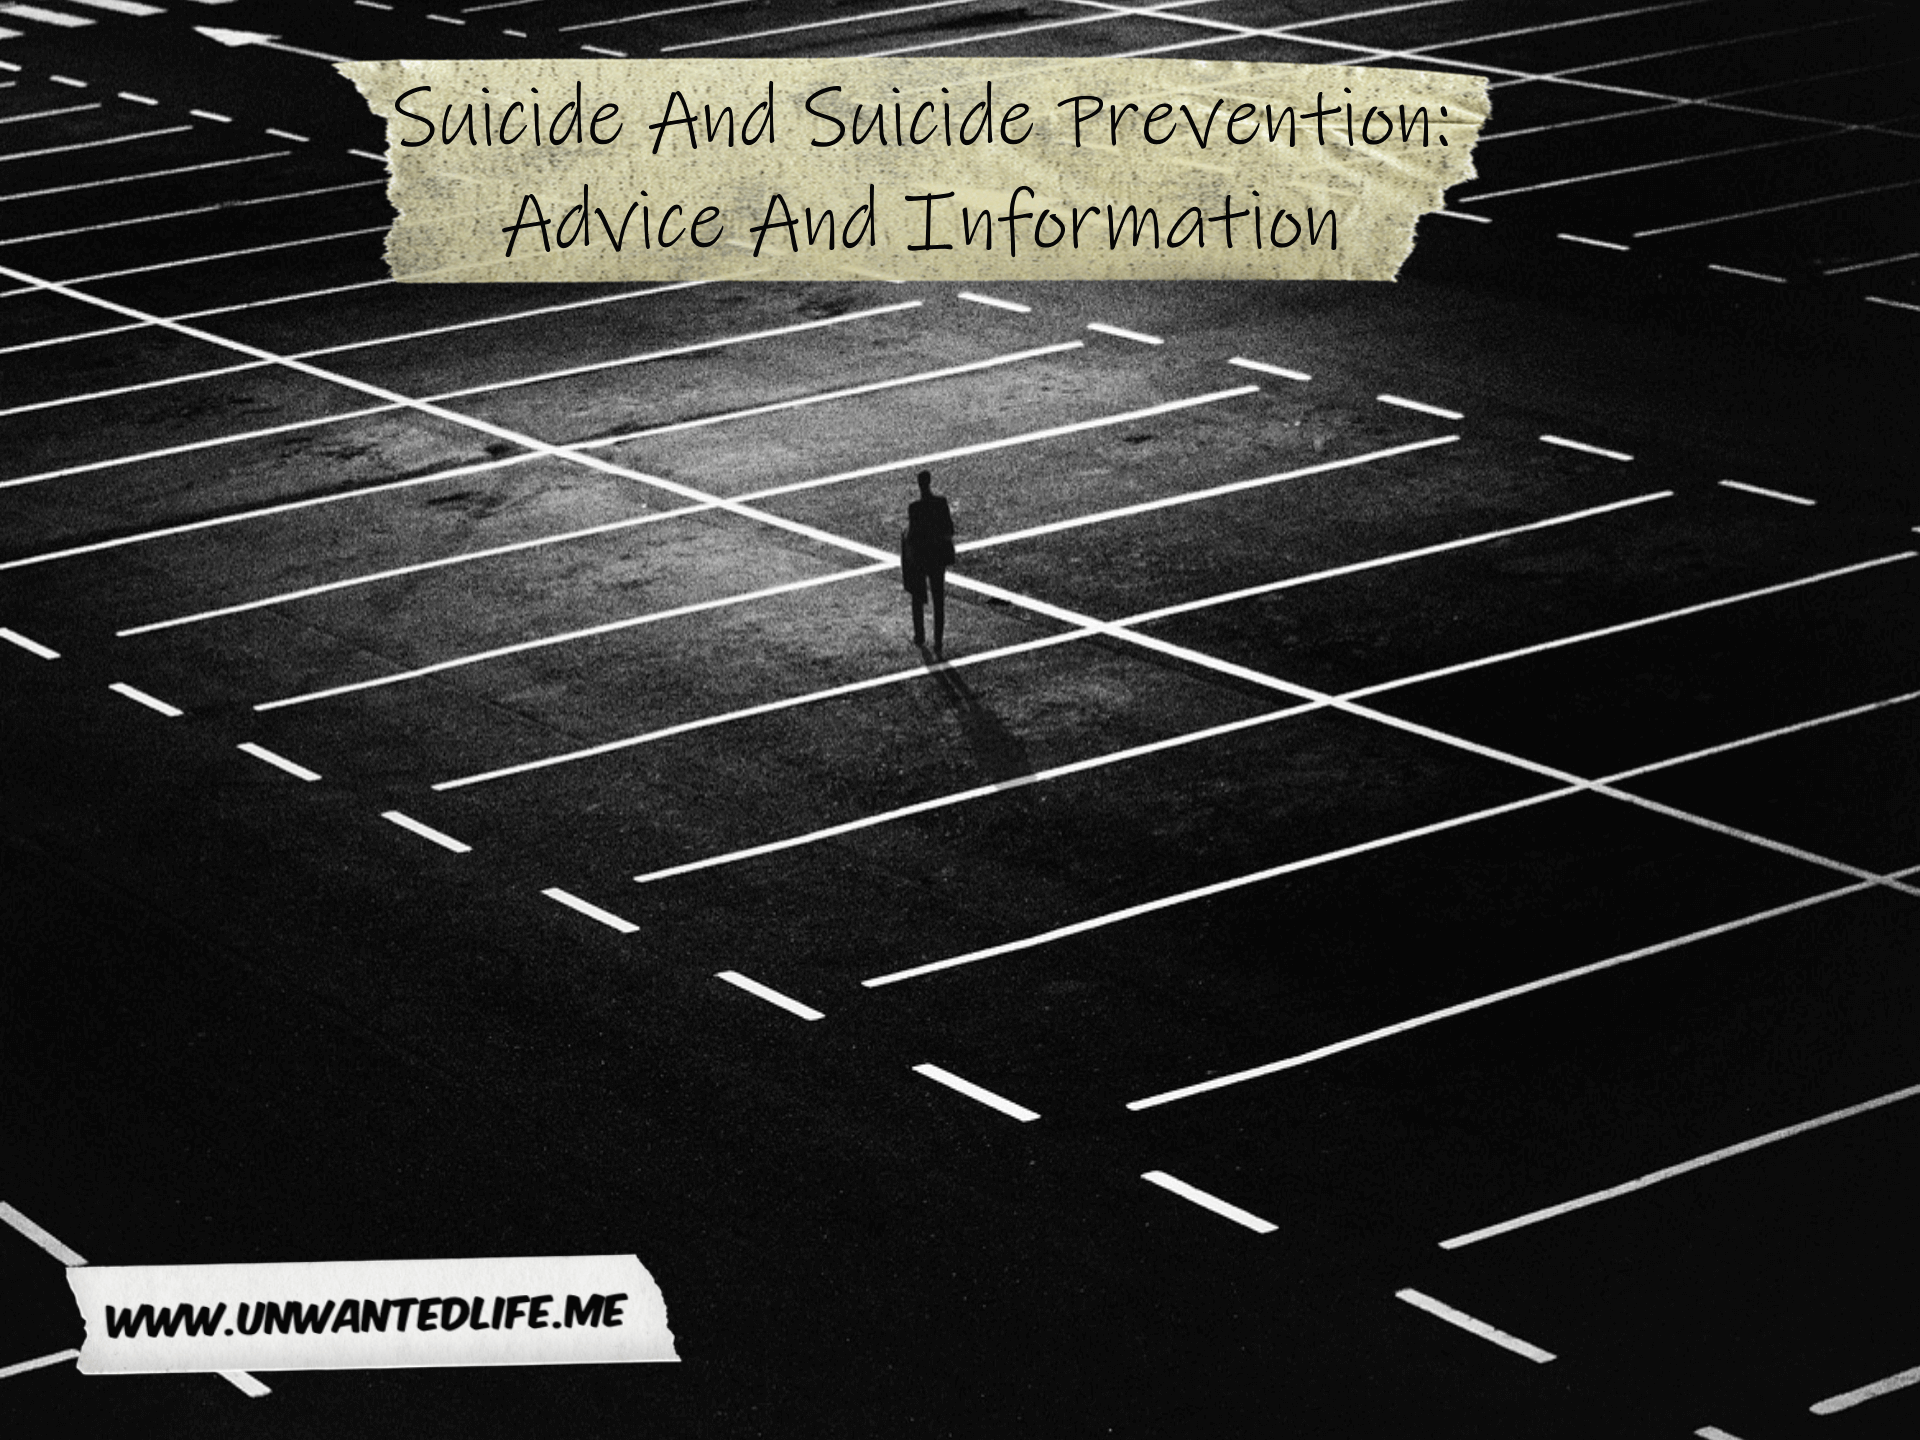 Suicide And Suicide Prevention: Advice And Information | Mental Health and Wellness | Unwanted Life